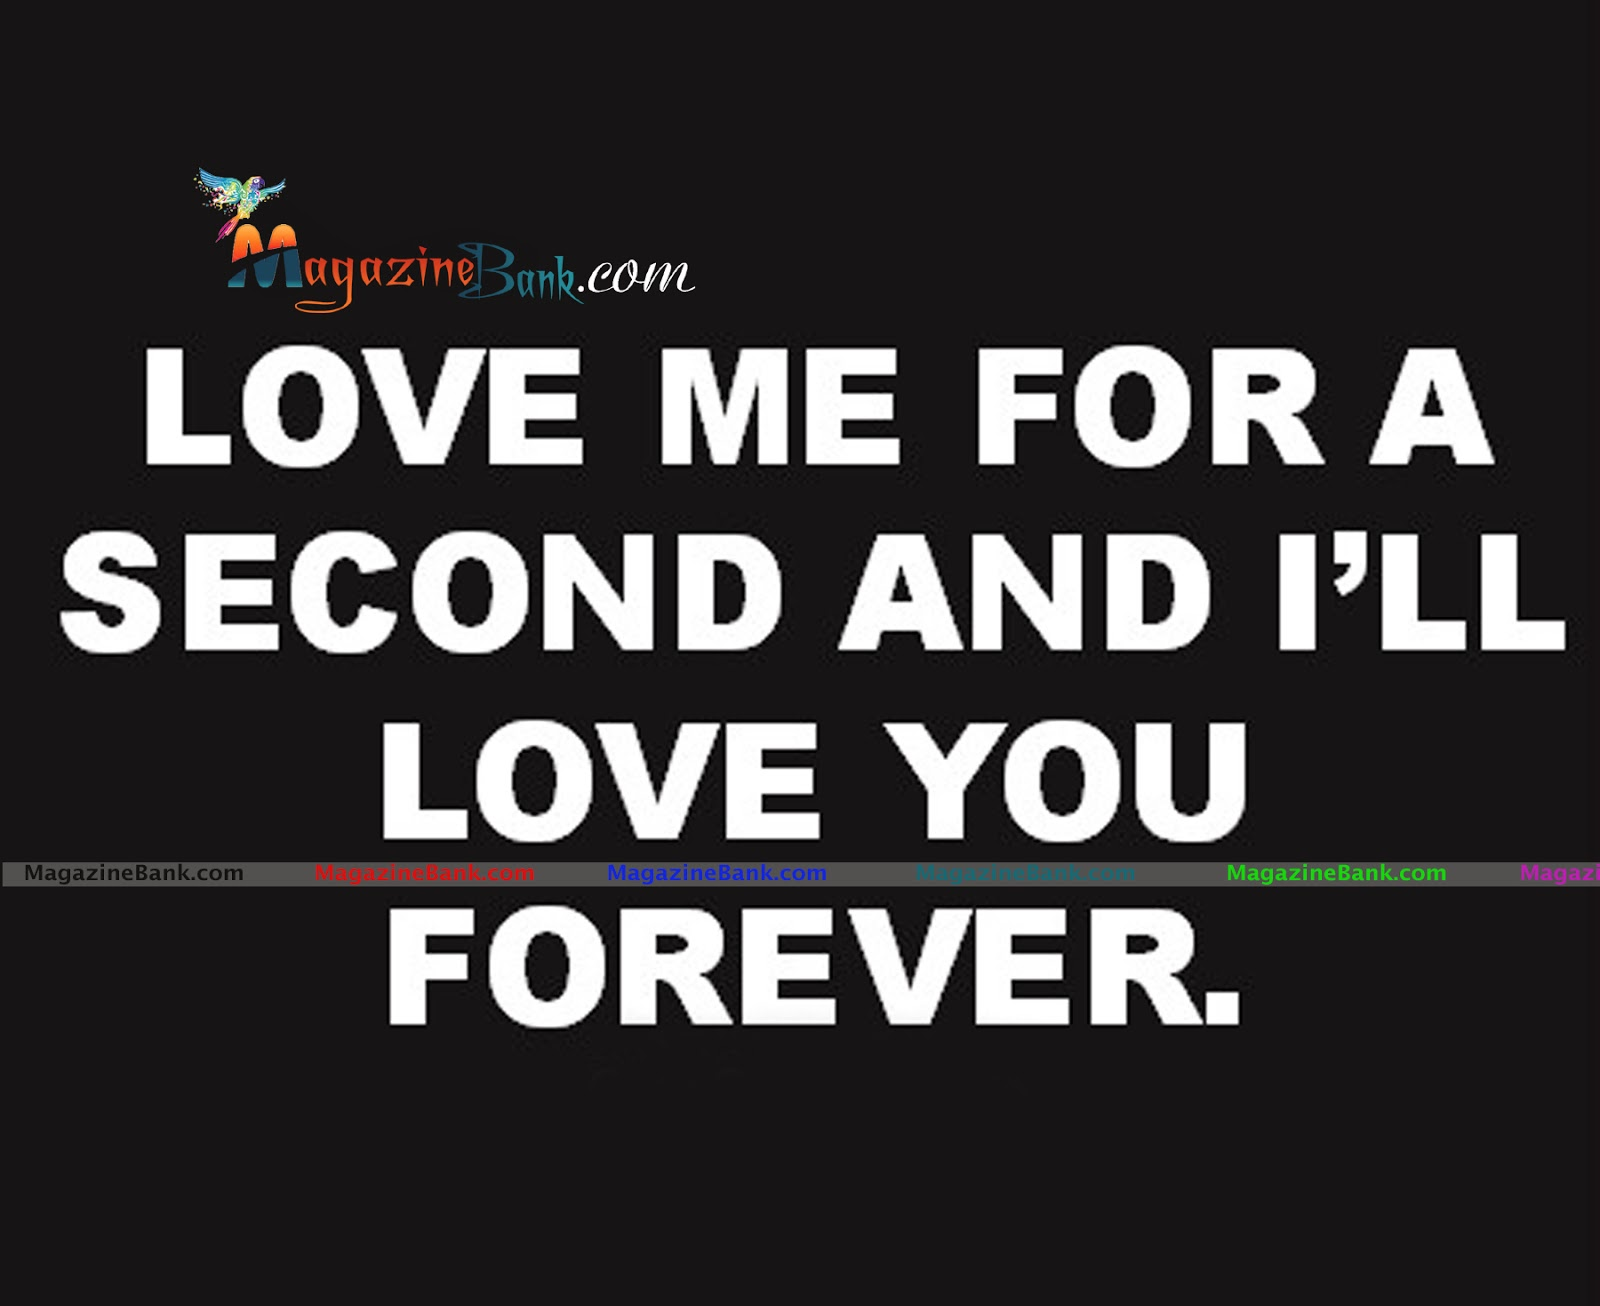 Free Love Quotes And Sayings For Him Cute Love Quotes For Him 16 Free Hd Wallpaper  Hdlovewall